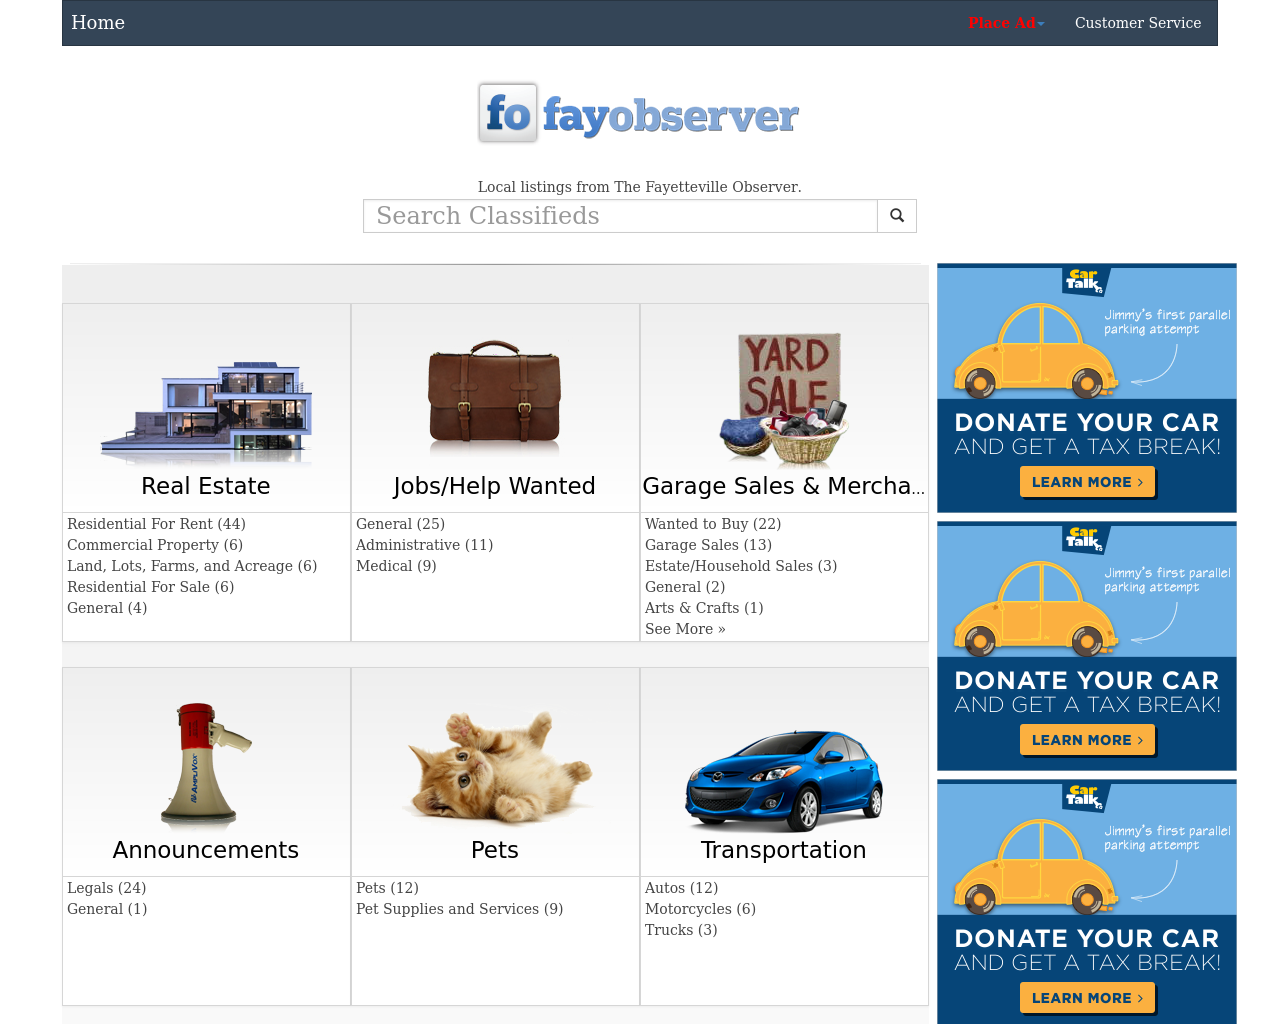 The-Fayetteville-Observer-Advertising-Reviews-Pricing